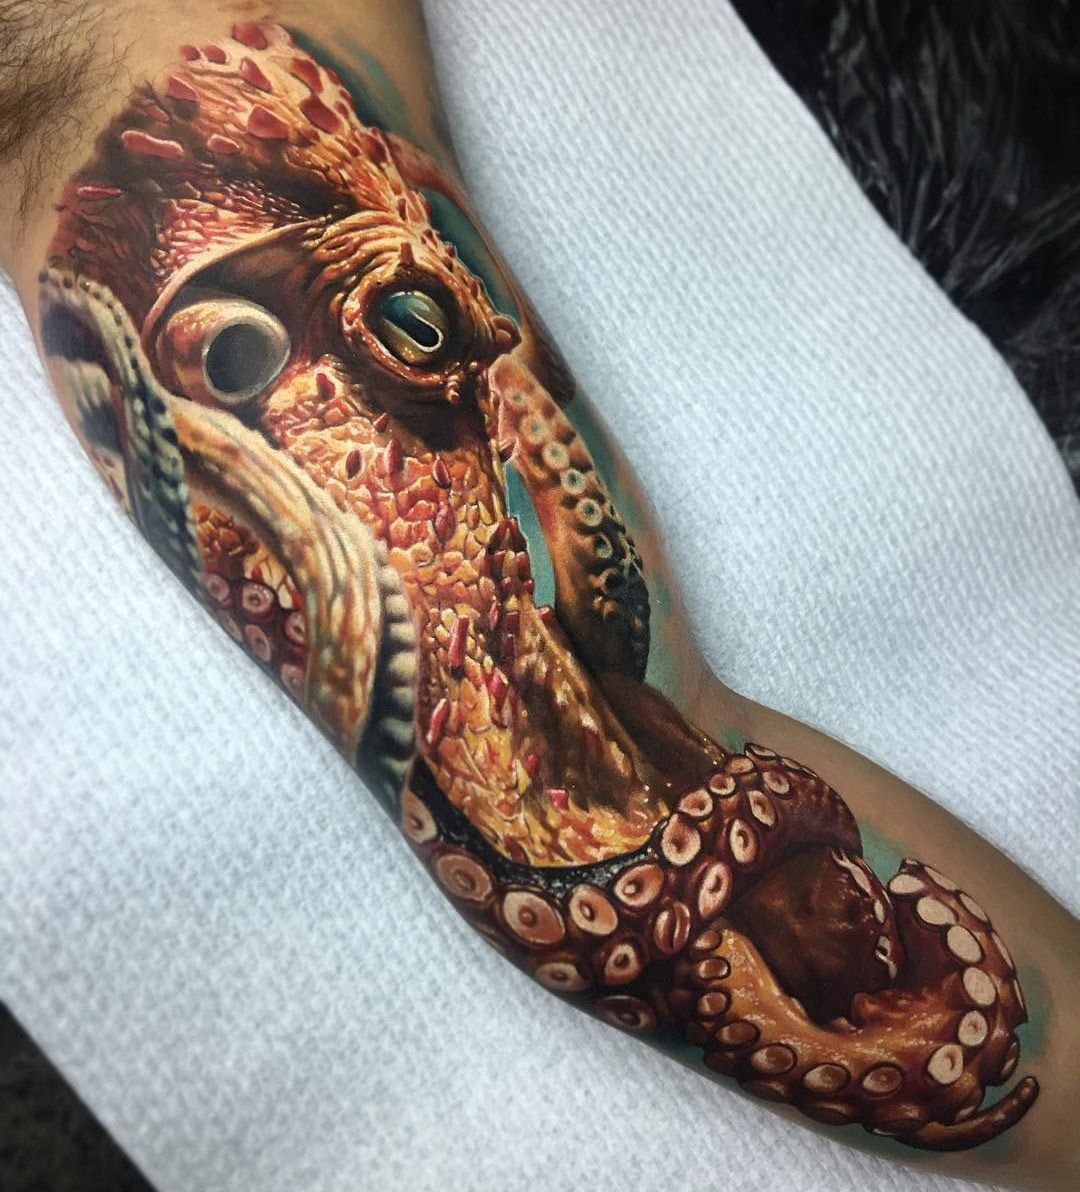 Octopus realism mens inner bicep tattoo tattoo designs and